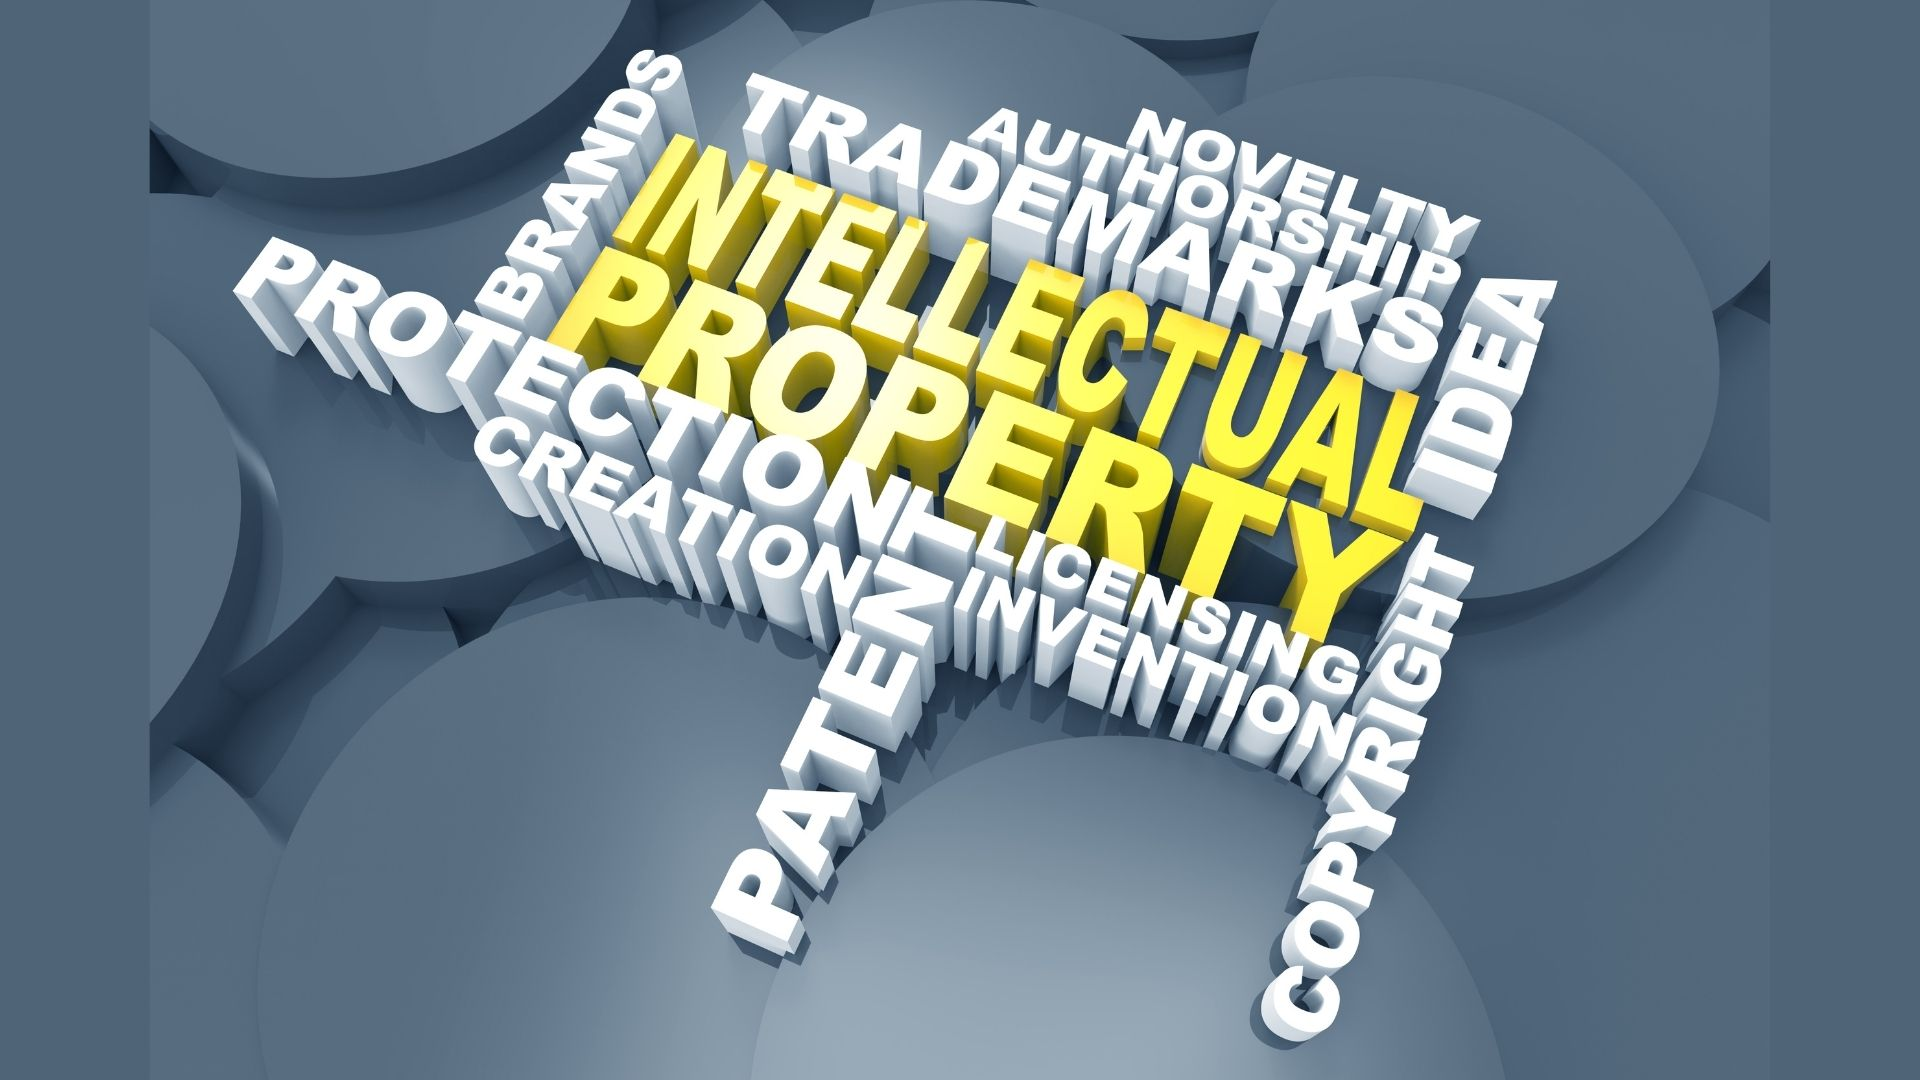 IP trademarks, copyrights, and patents